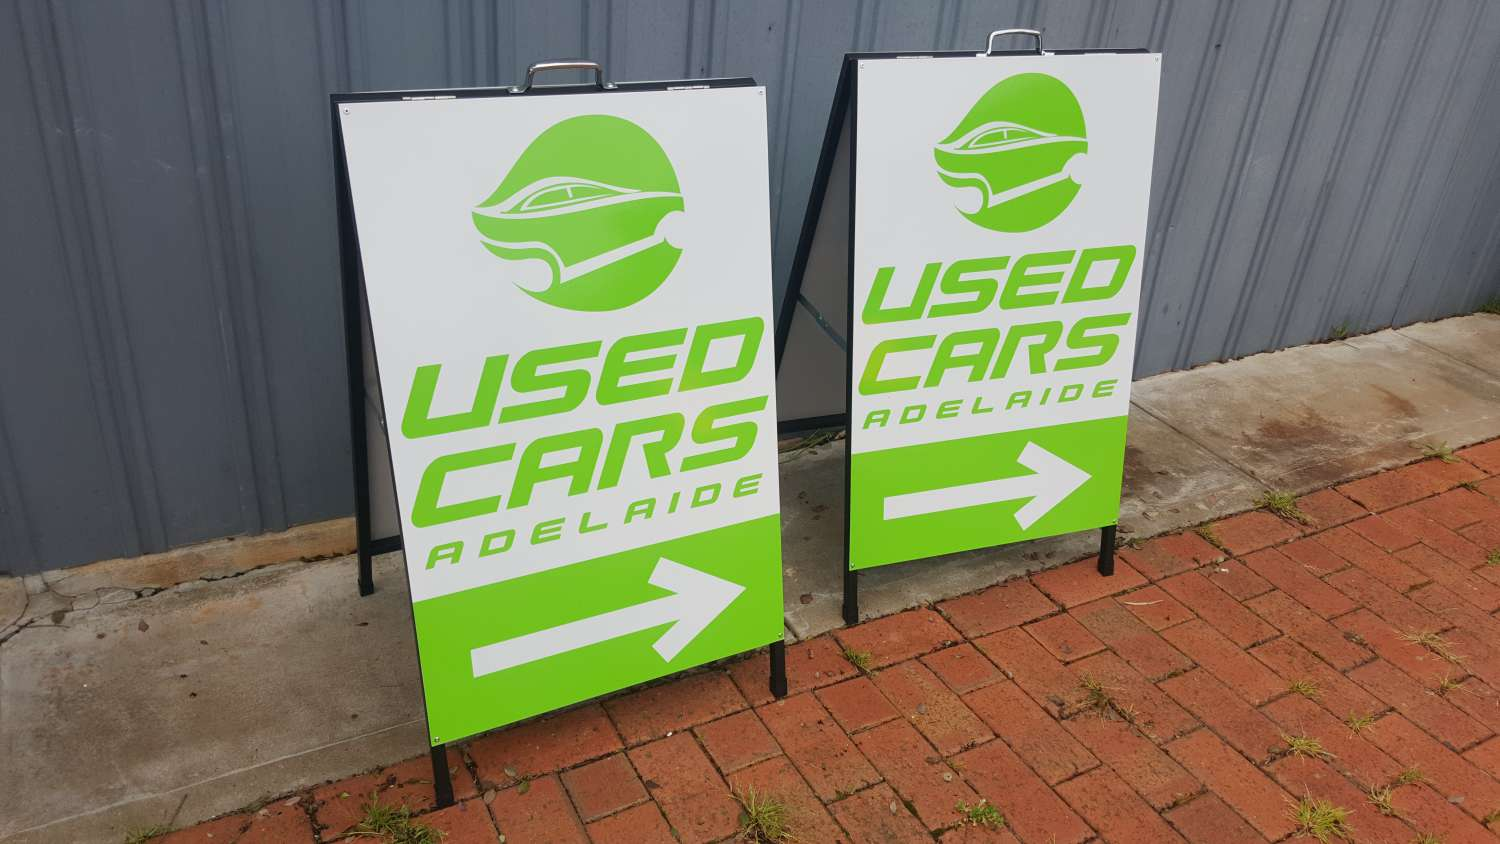 Used-Cars-Adelaide